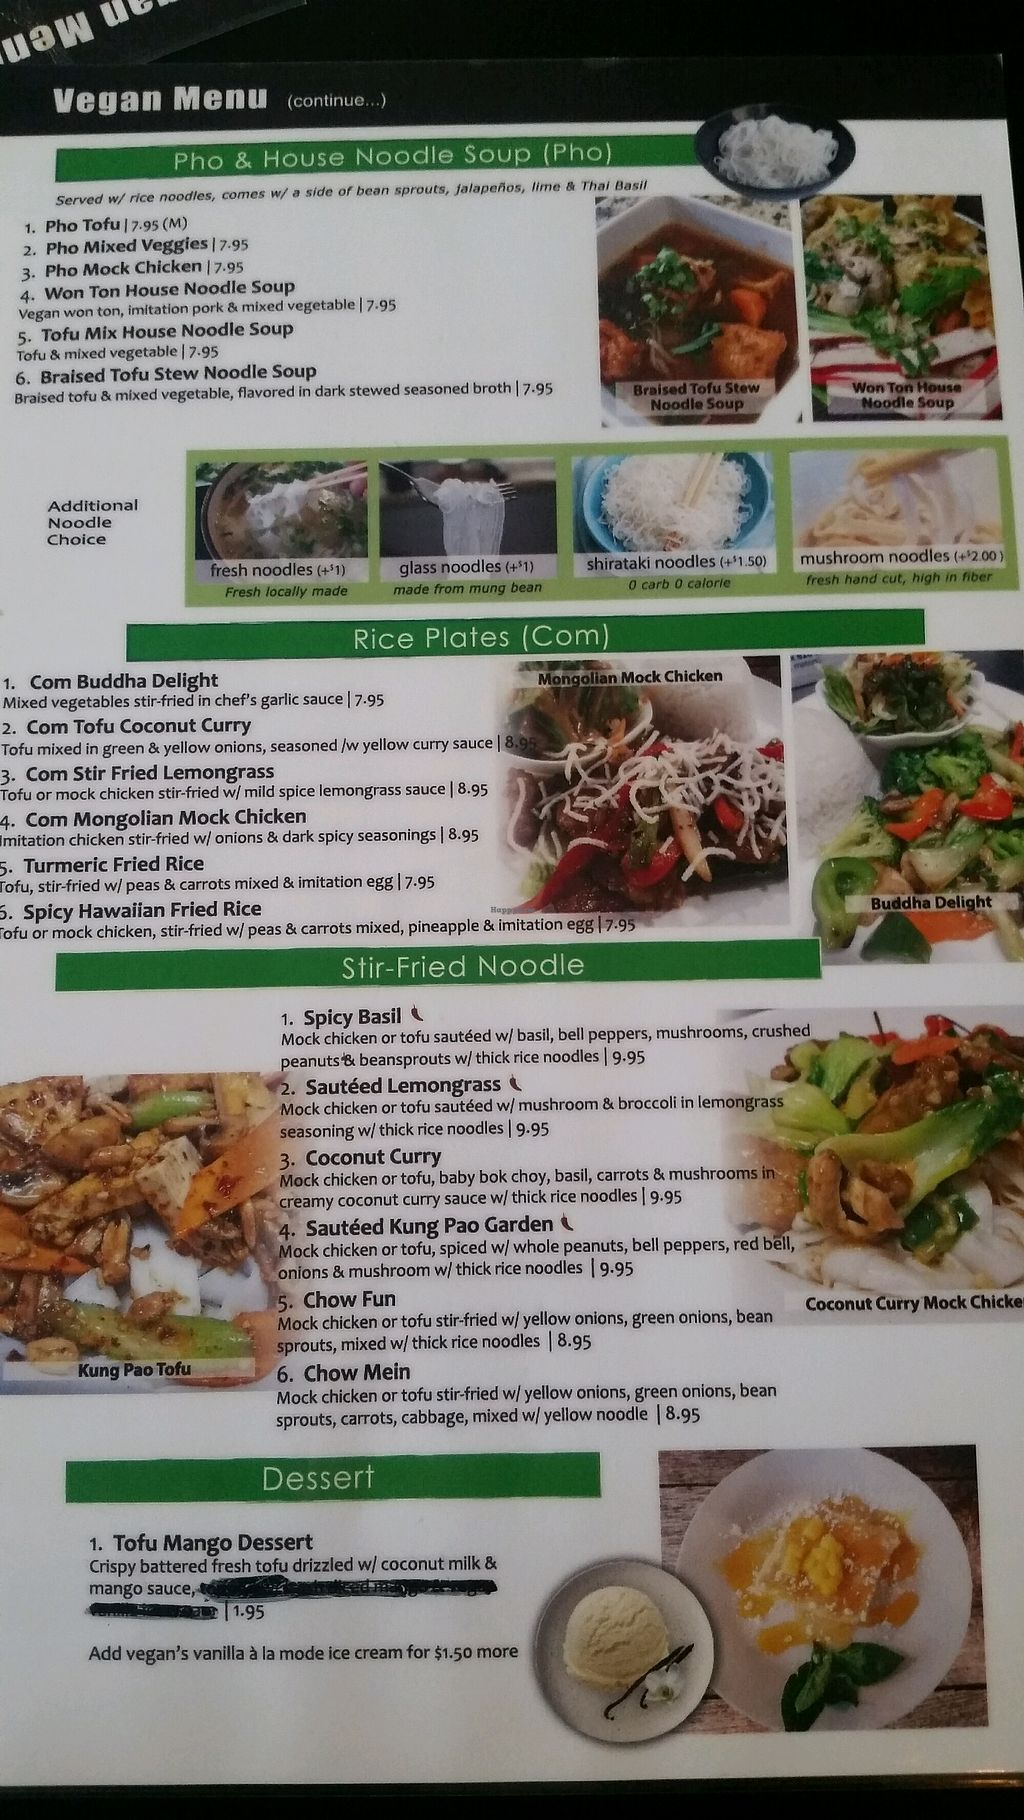 """Photo of Pho Fresh  by <a href=""""/members/profile/lembo916"""">lembo916</a> <br/>Vegan/vegetarian menu <br/> October 31, 2017  - <a href='/contact/abuse/image/98567/320325'>Report</a>"""